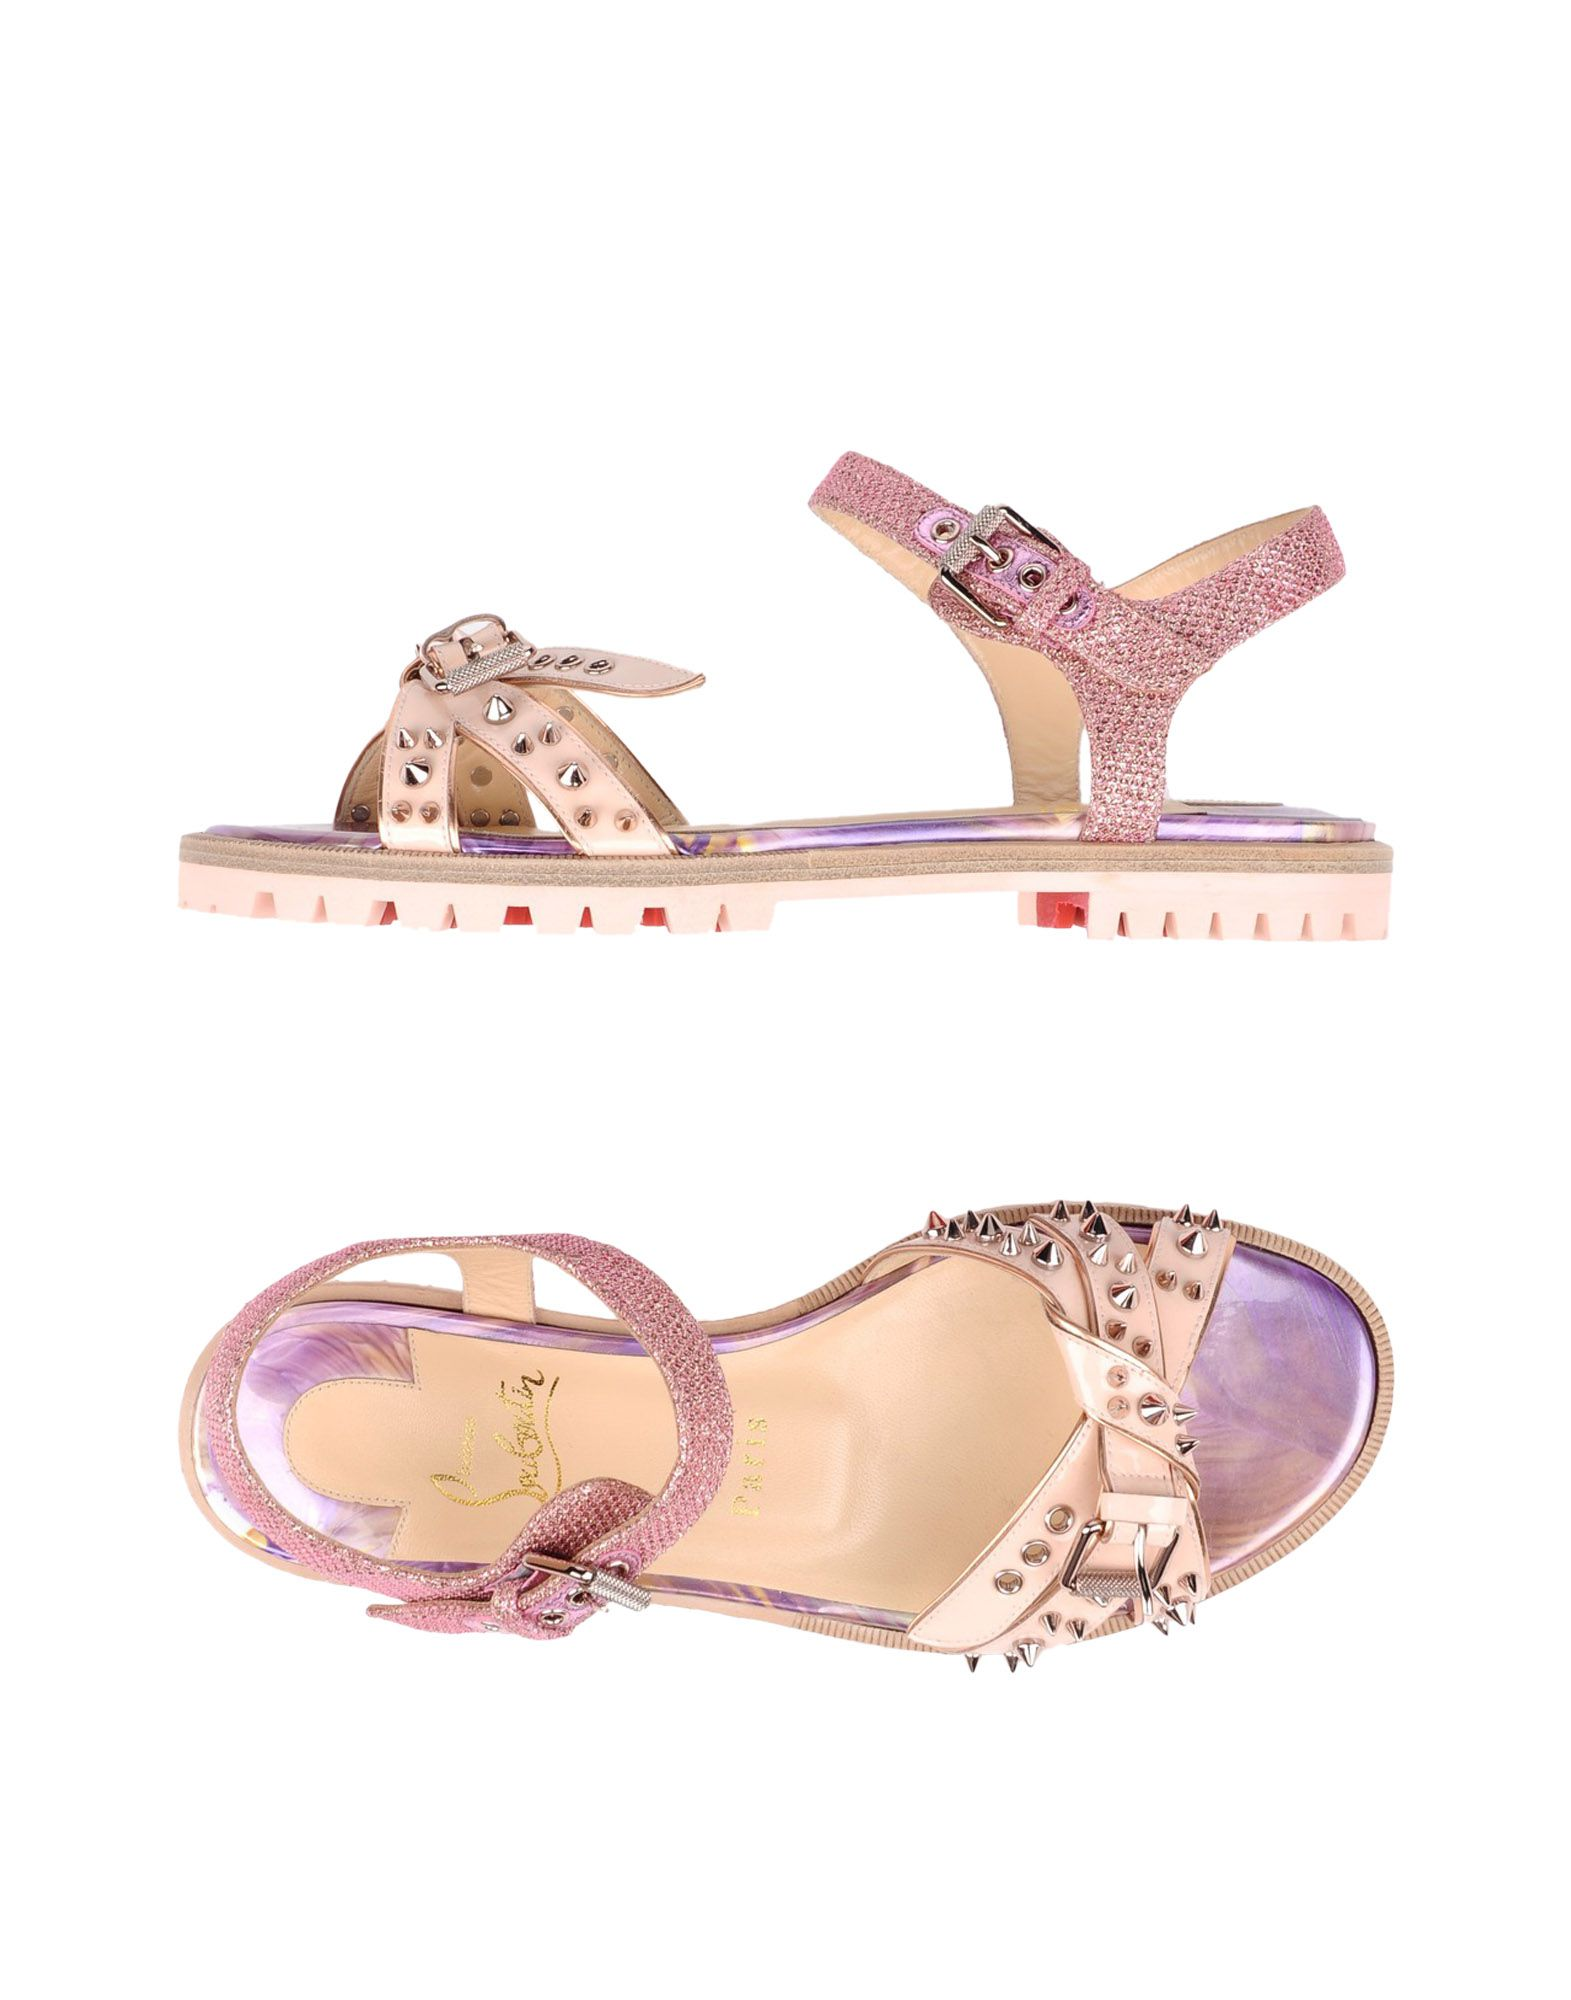 CHRISTIAN LOUBOUTIN Sandals. varnished effect, side seam stripes, glitter, two-tone, buckling ankle strap closure, round toeline, flat, leather lining, rubber cleated sole, contains non-textile parts of animal origin, small sized. Textile fibers, Soft Leather